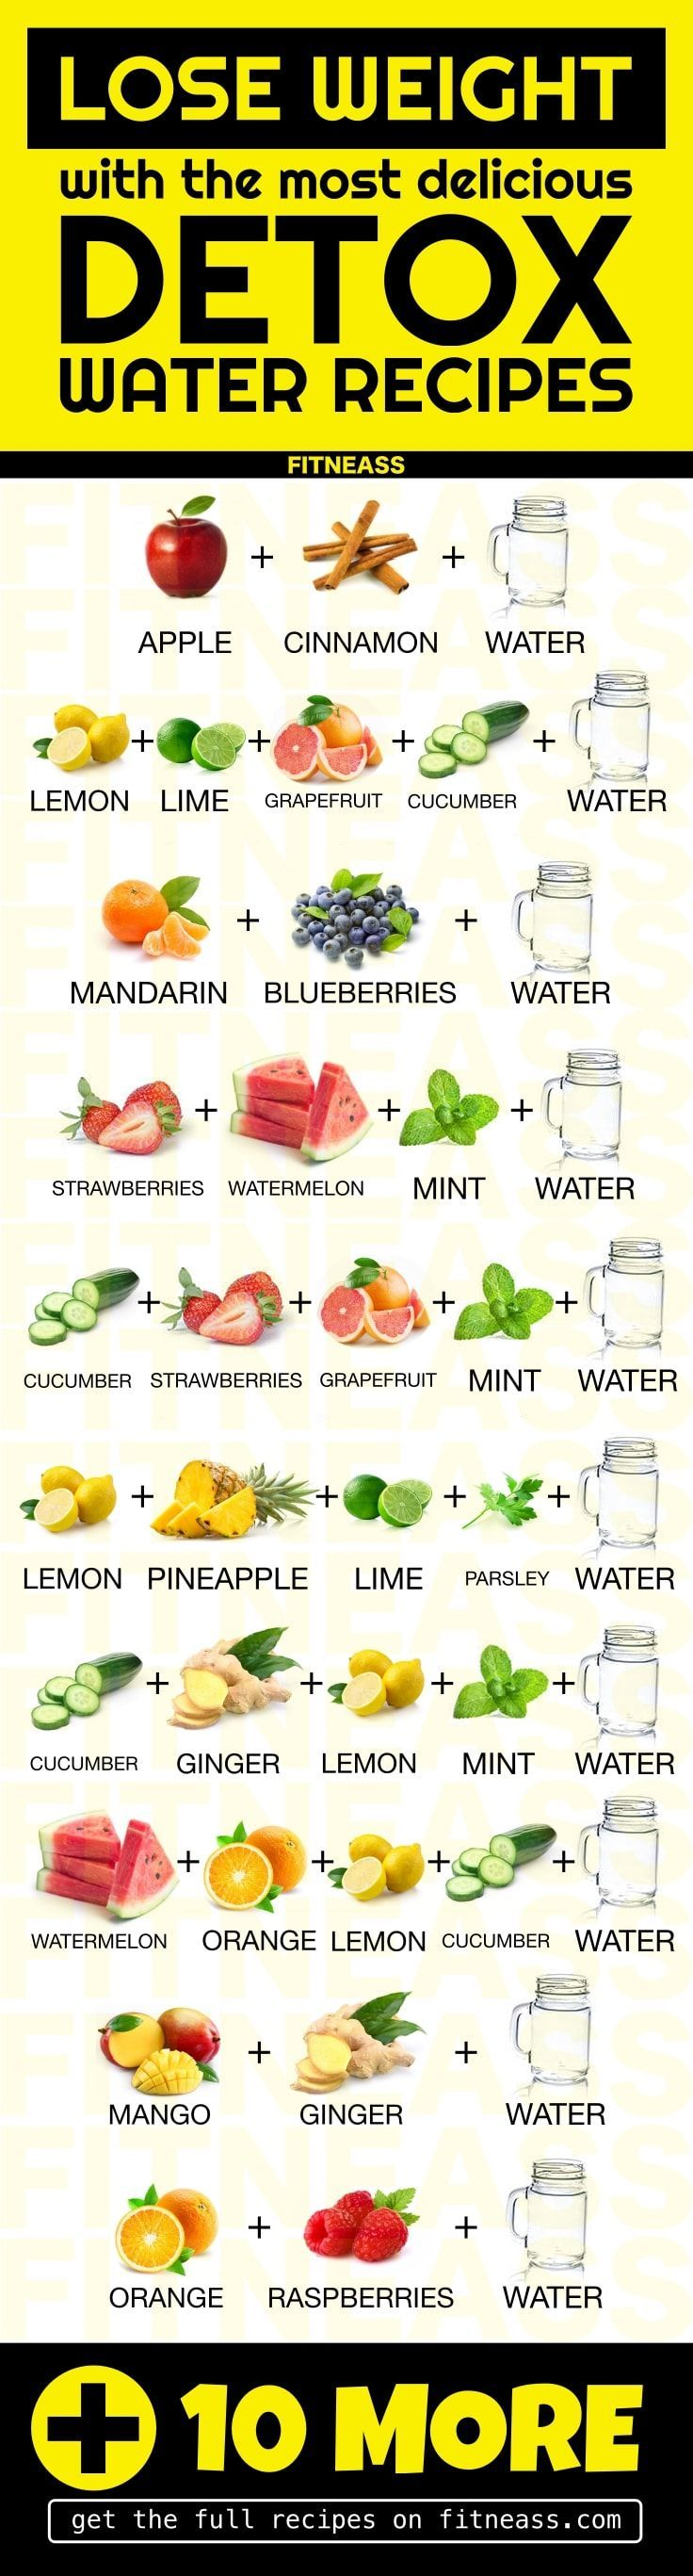 20 Detox Water Recipes To Lose Weight And Flush Out Toxins 2 week diet cleanse